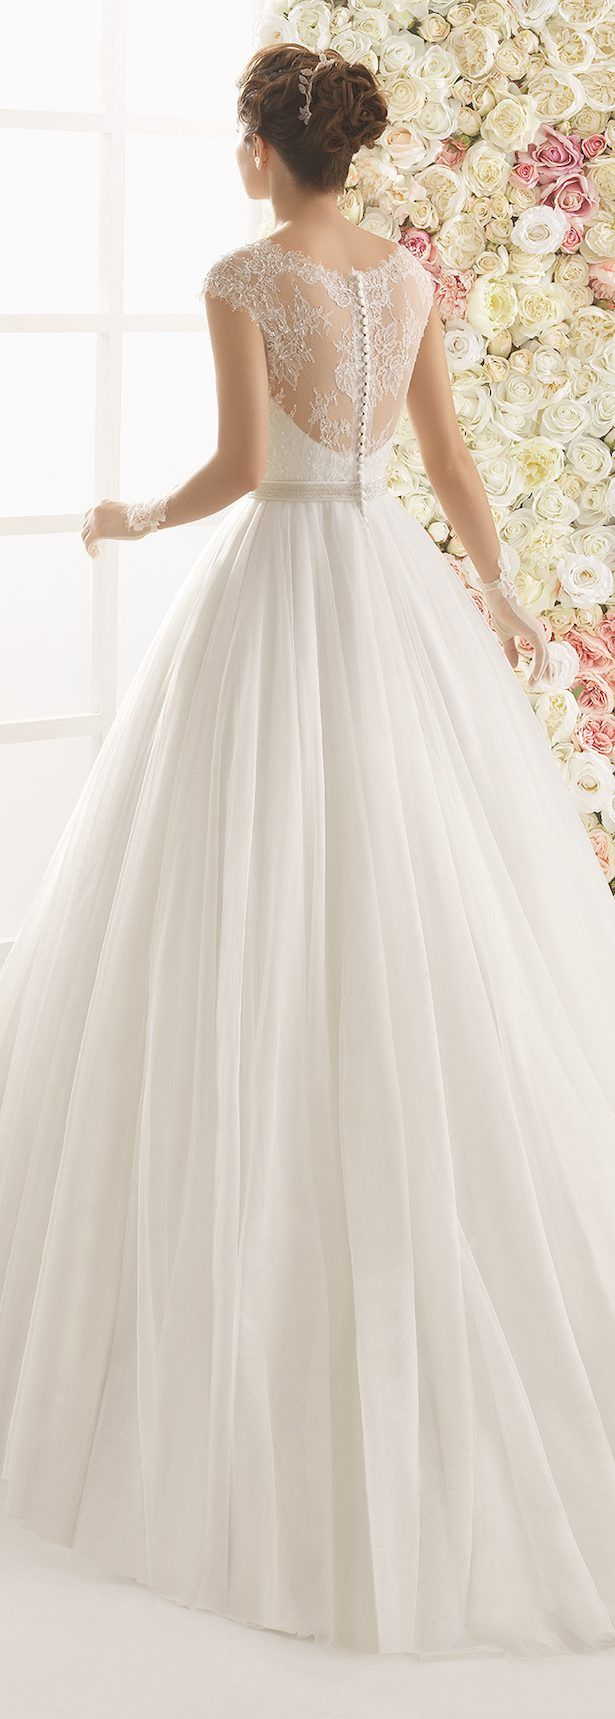 Wedding Dress by Aire Barcelona 2017 Bridal Collection 64 - Belle The Magazine